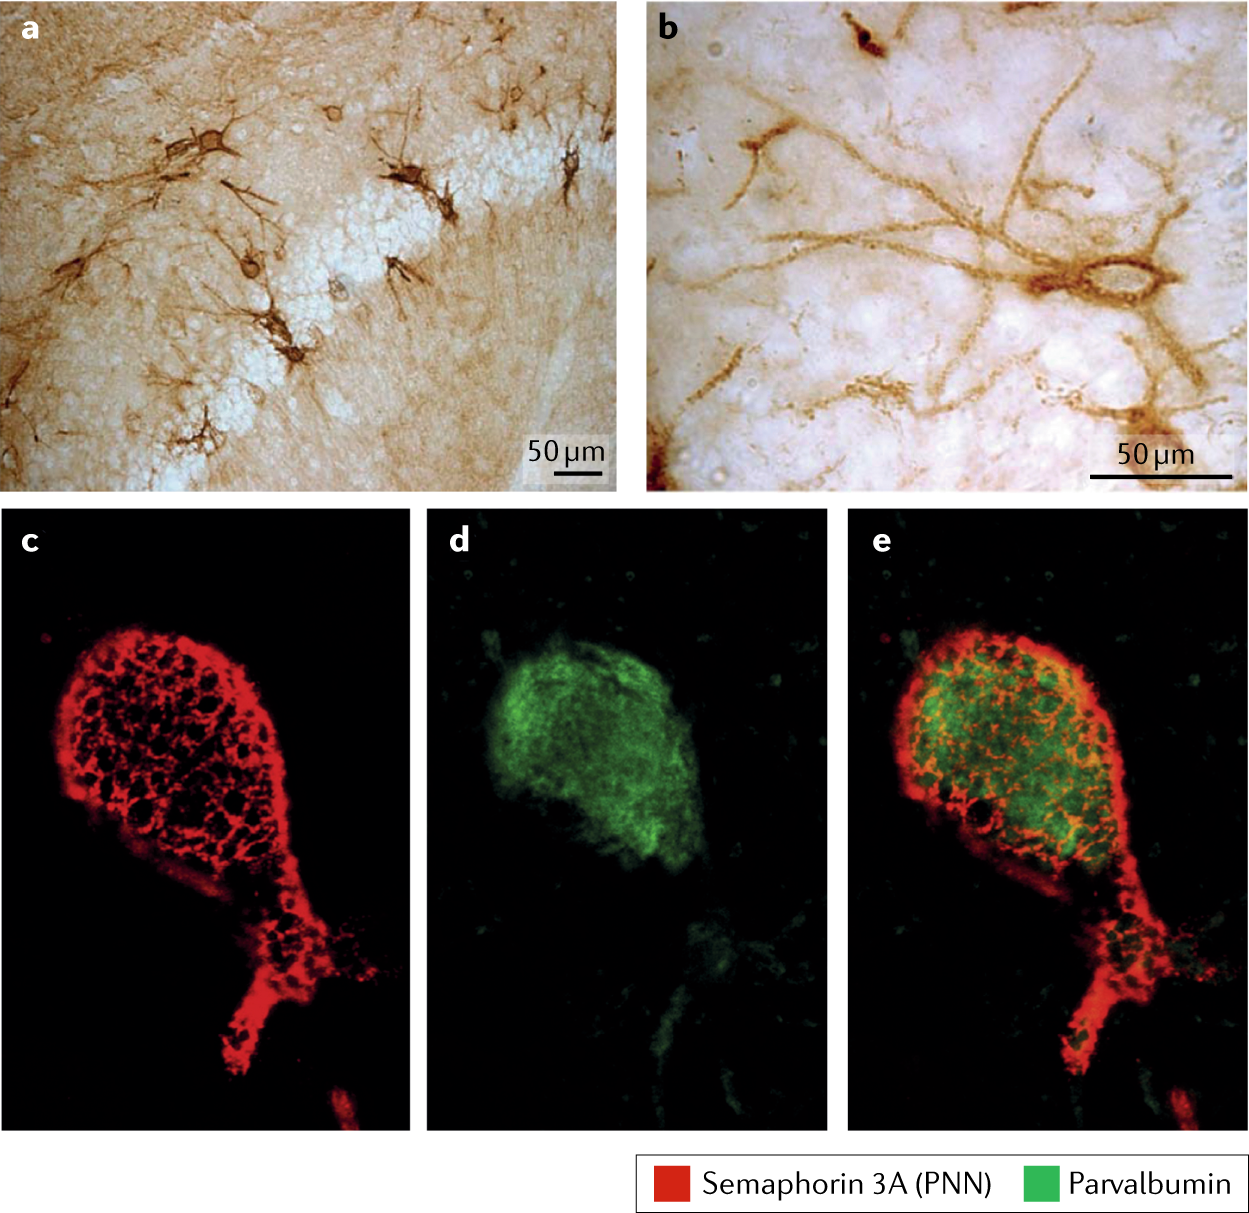 The roles of perineuronal nets and the perinodal extracellular